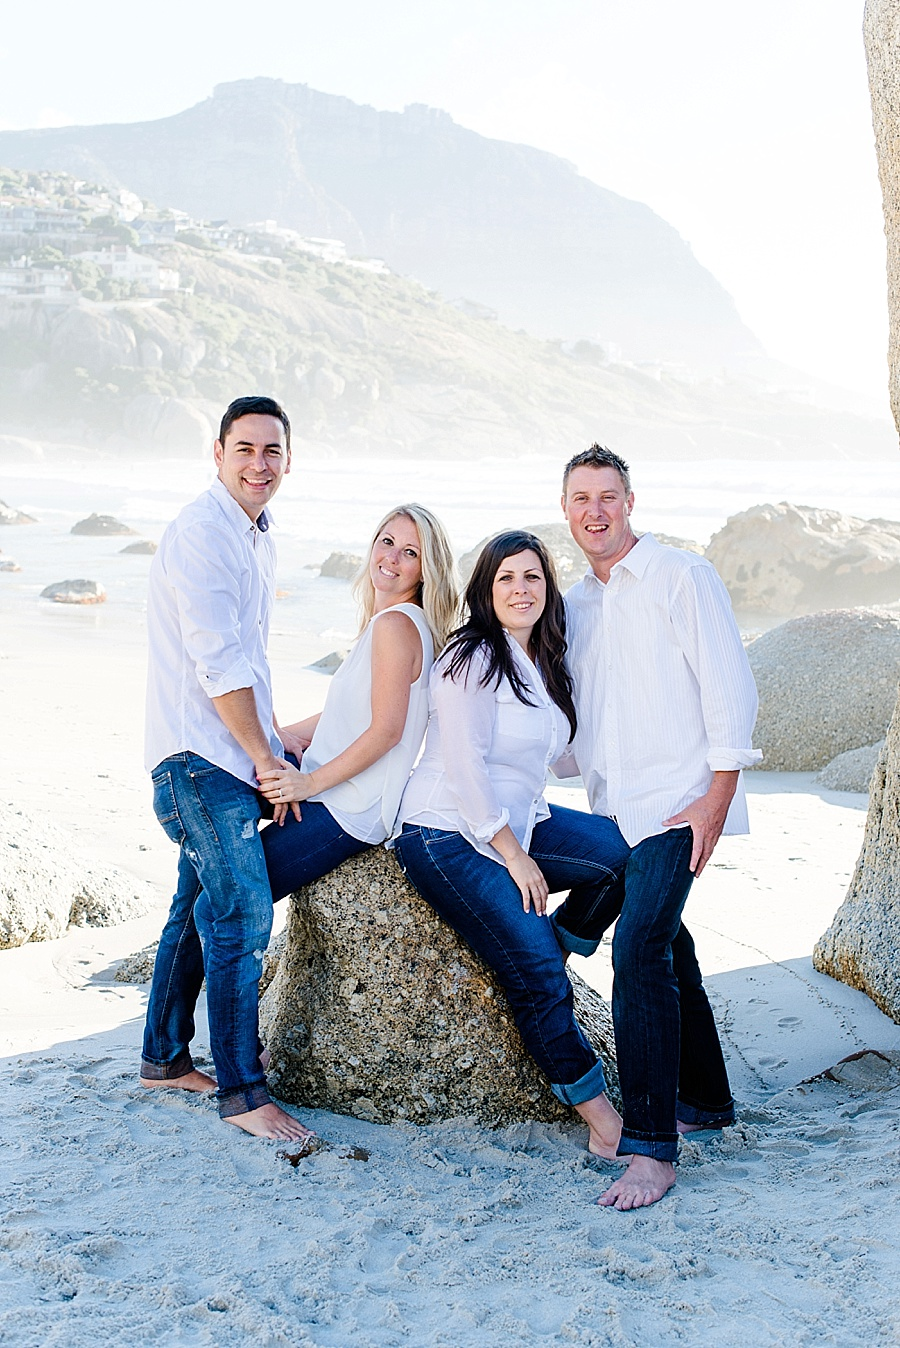 Darren Bester Photography - Cape Town Photographer - The Burns Family_0006.jpg